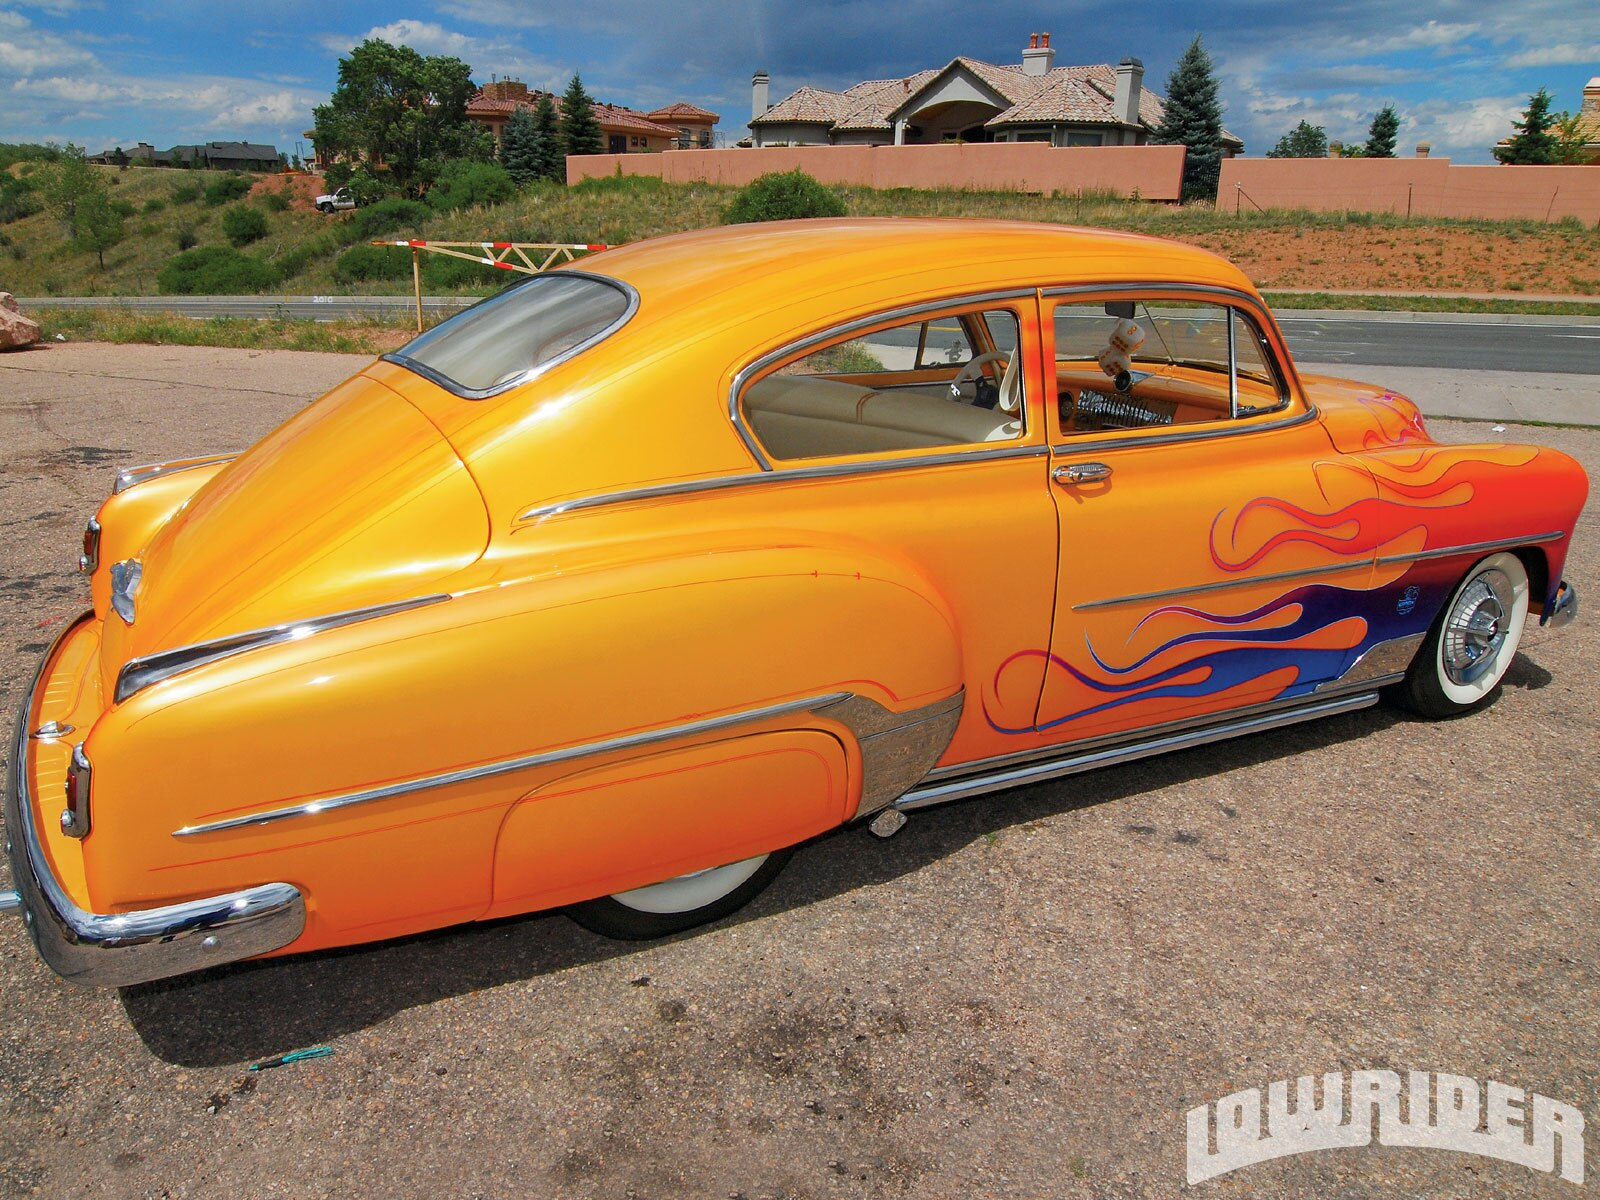 Lowrider Car Hd Wallpaper 1952 Chevrolet Torpedo Fastback Lowrider Magazine